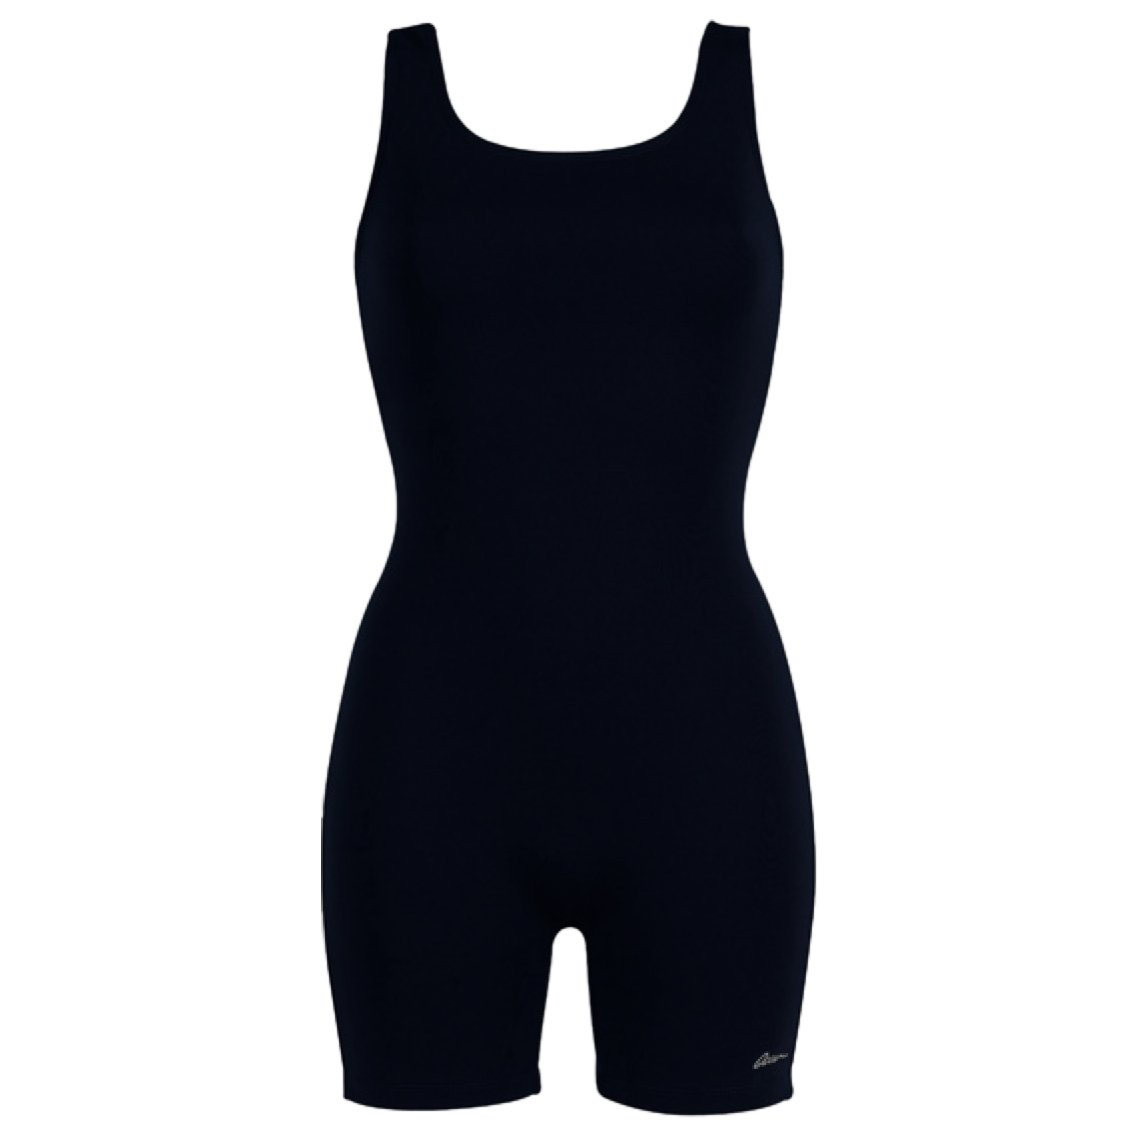 Dolfin AQUASHAPE Women's Solid AQUATARD Black Size 6